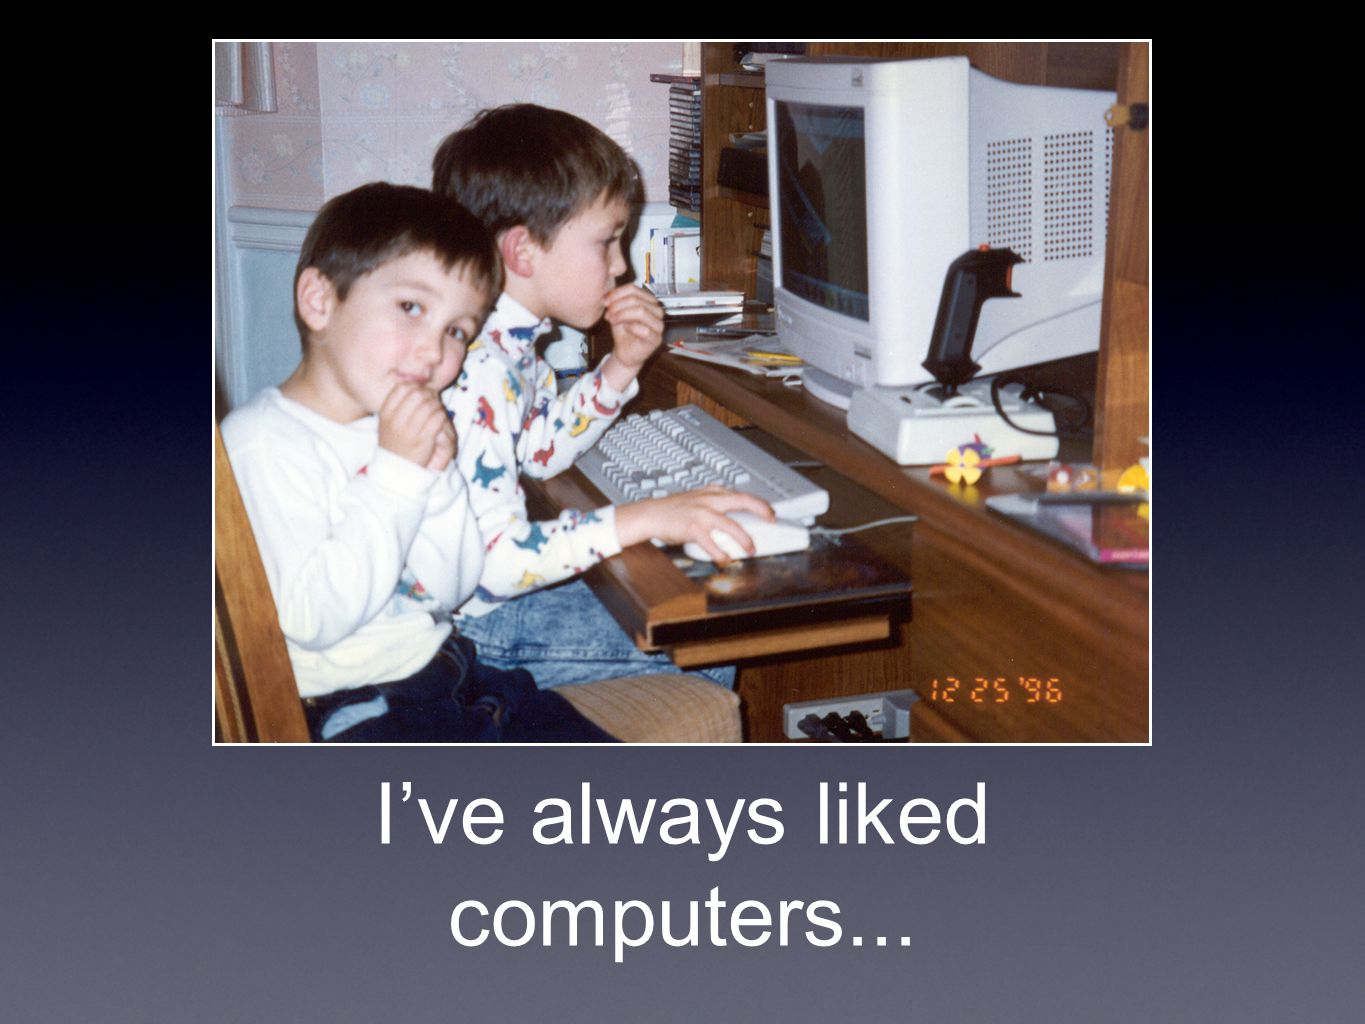 I've always liked computers...